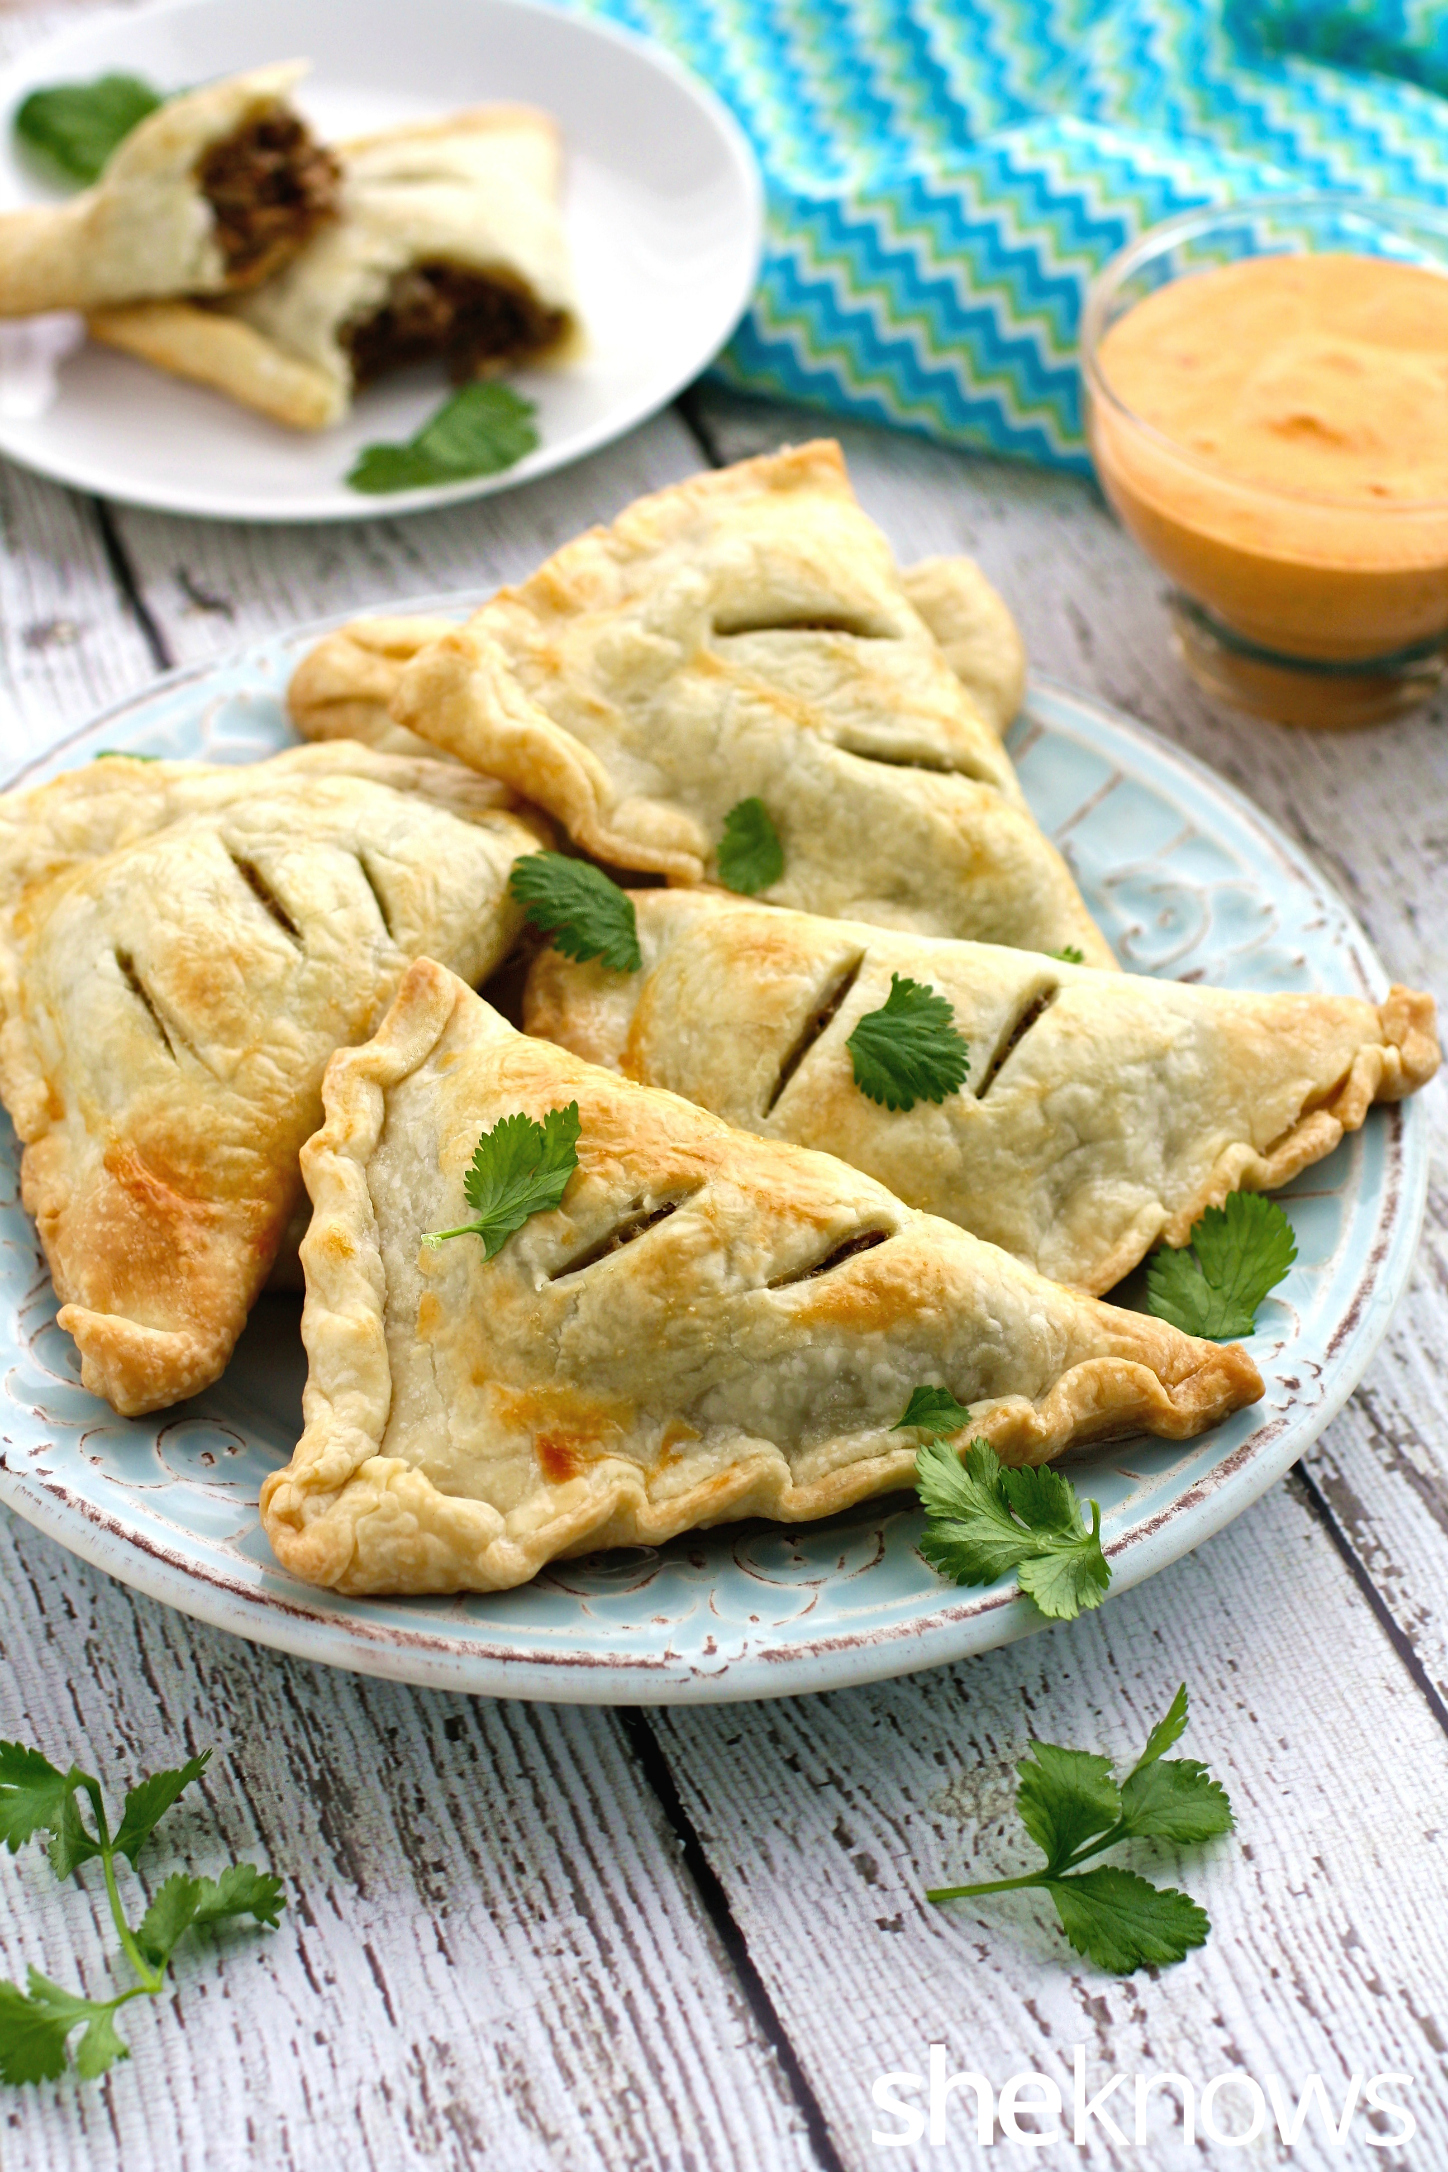 Lentil and mushroom empanadas with creamy roasted red pepper sauce recipe